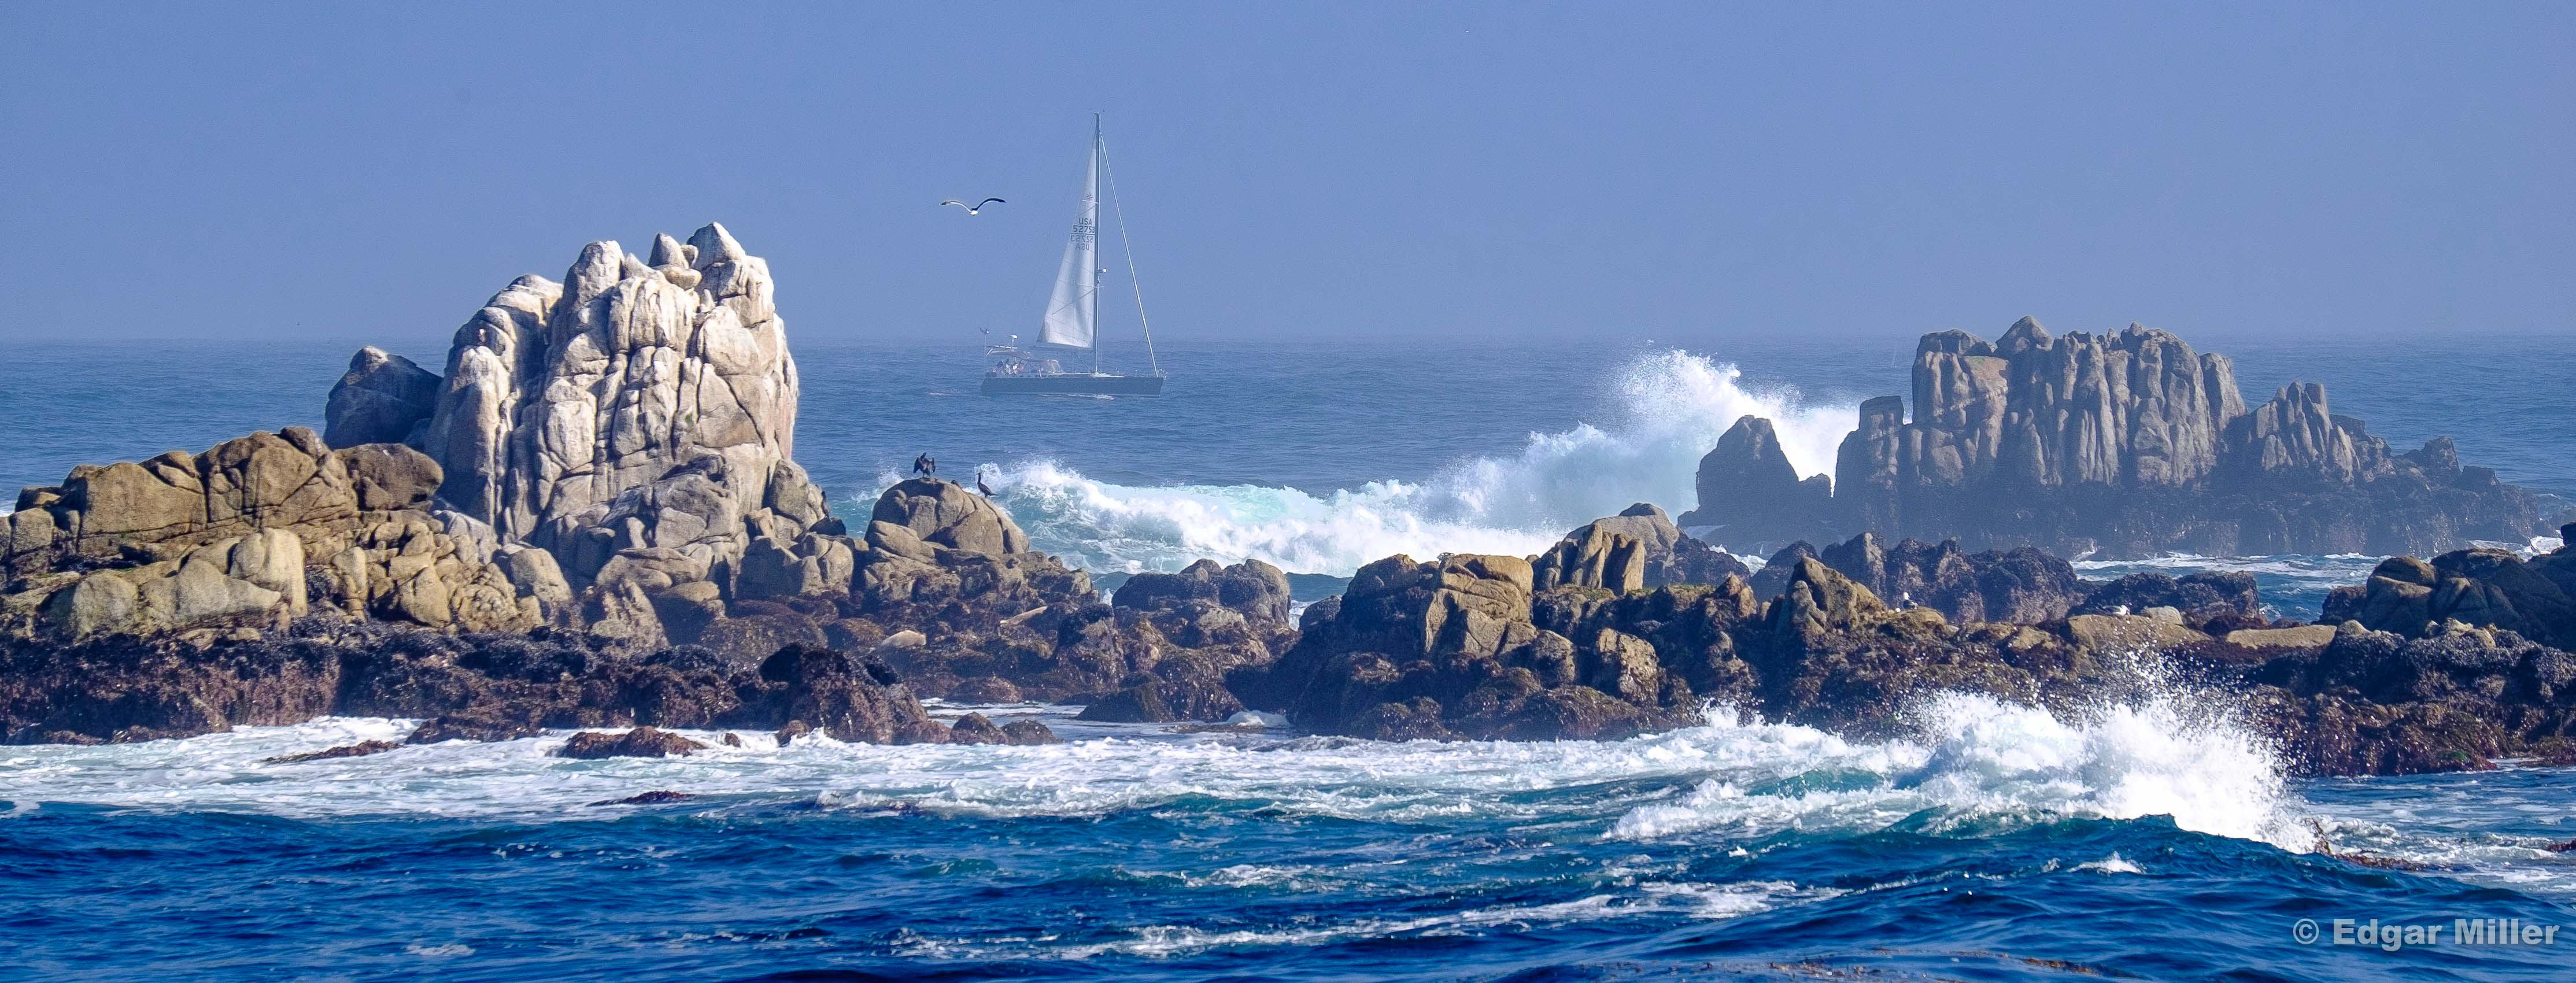 Passing Sailboat, Pacific Grove, California